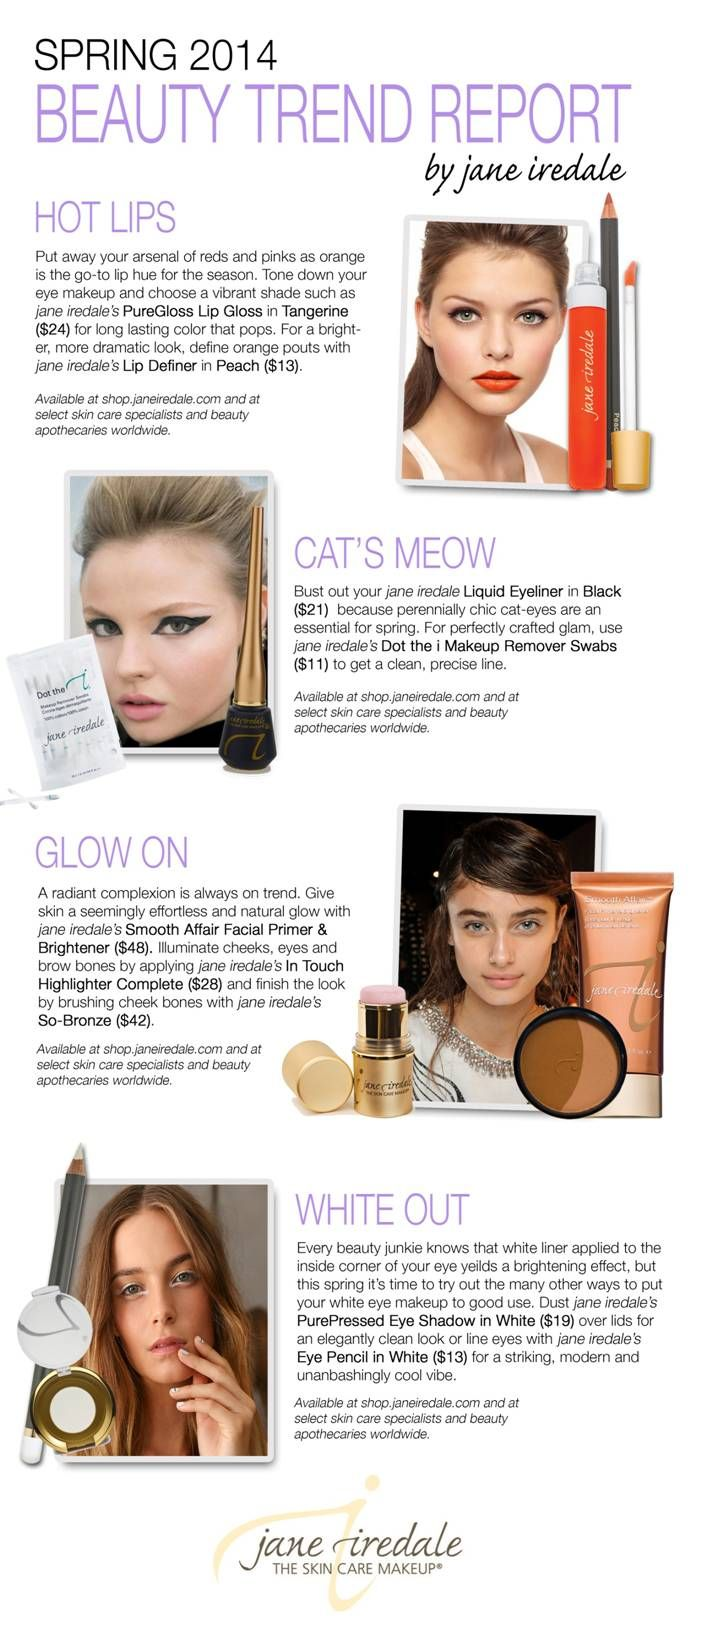 2014 Beauty Trend Report from jane iredale Beauty trends